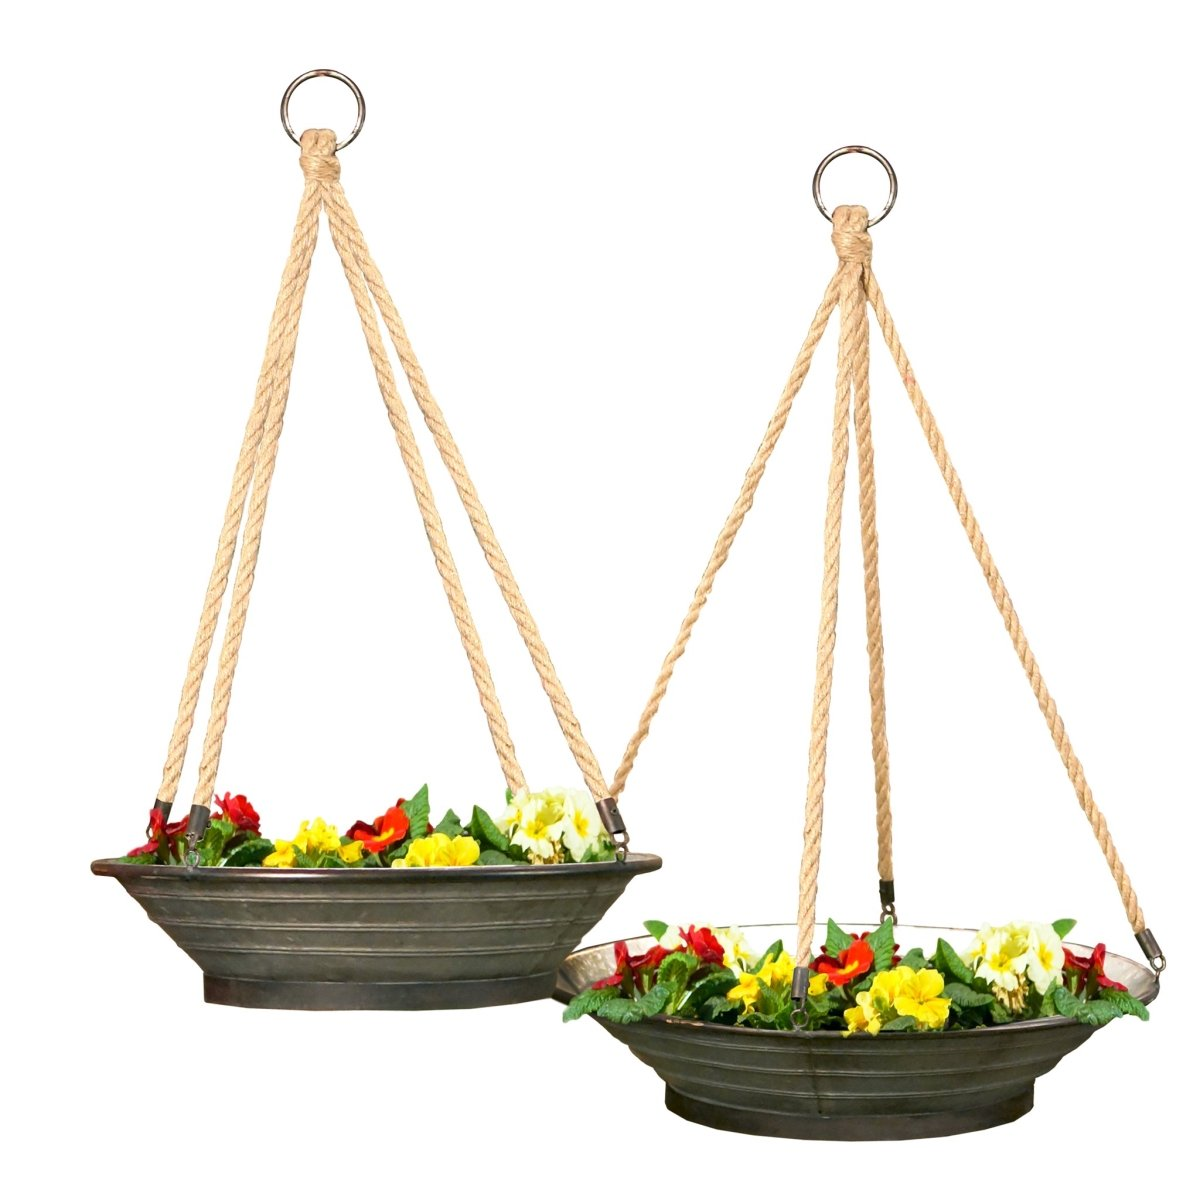 VIP Home Garden FH1579 Garden Hanging Planter Gray by VIP Home Garden